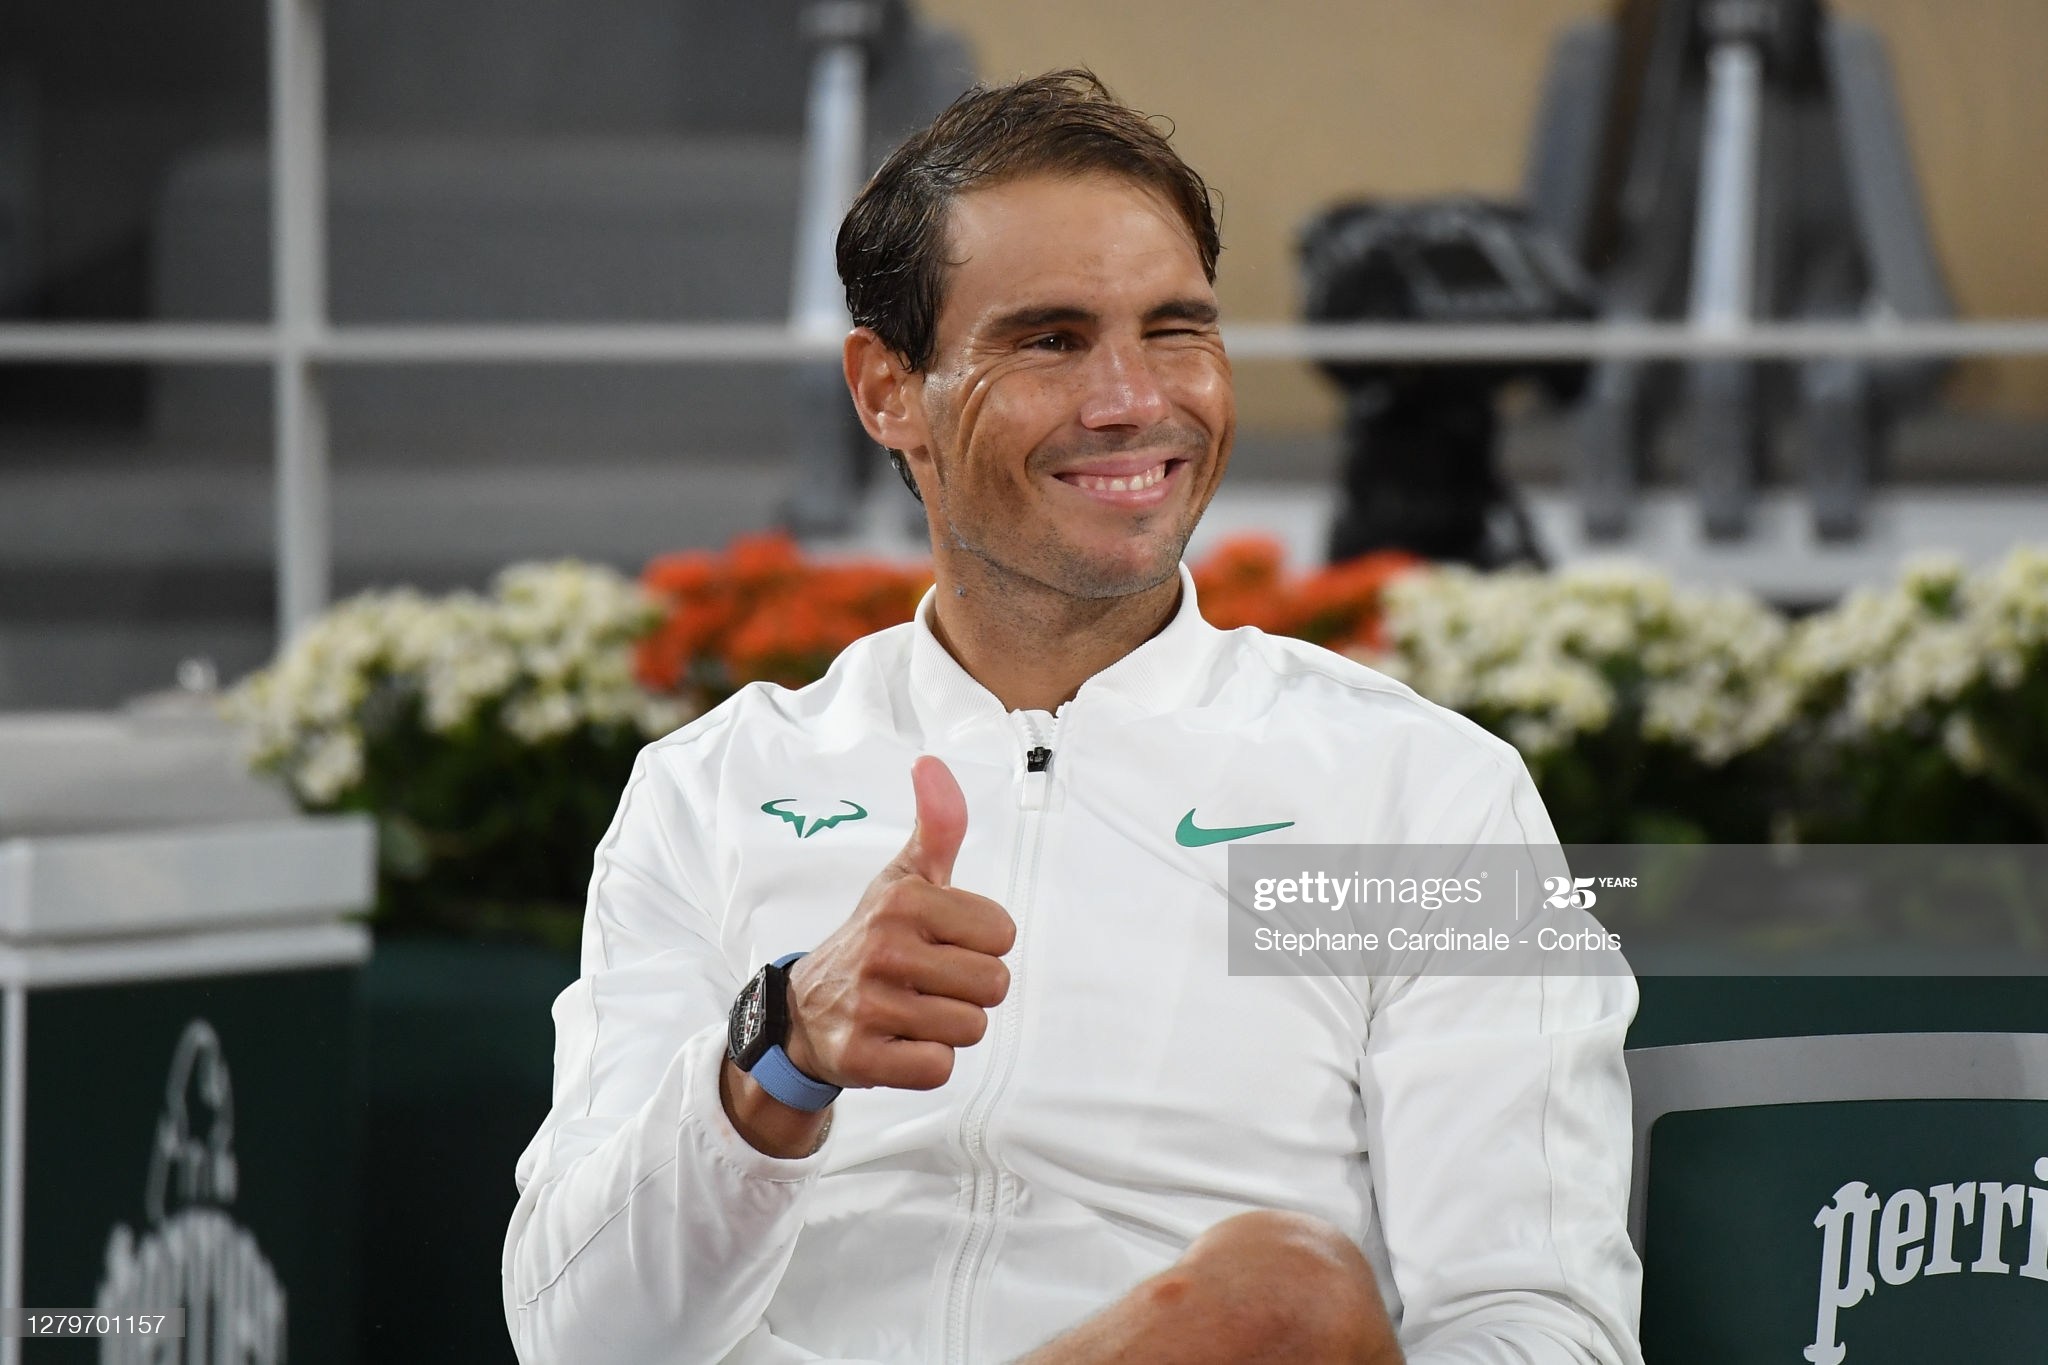 nadal day 15 frenchopen 2020.432